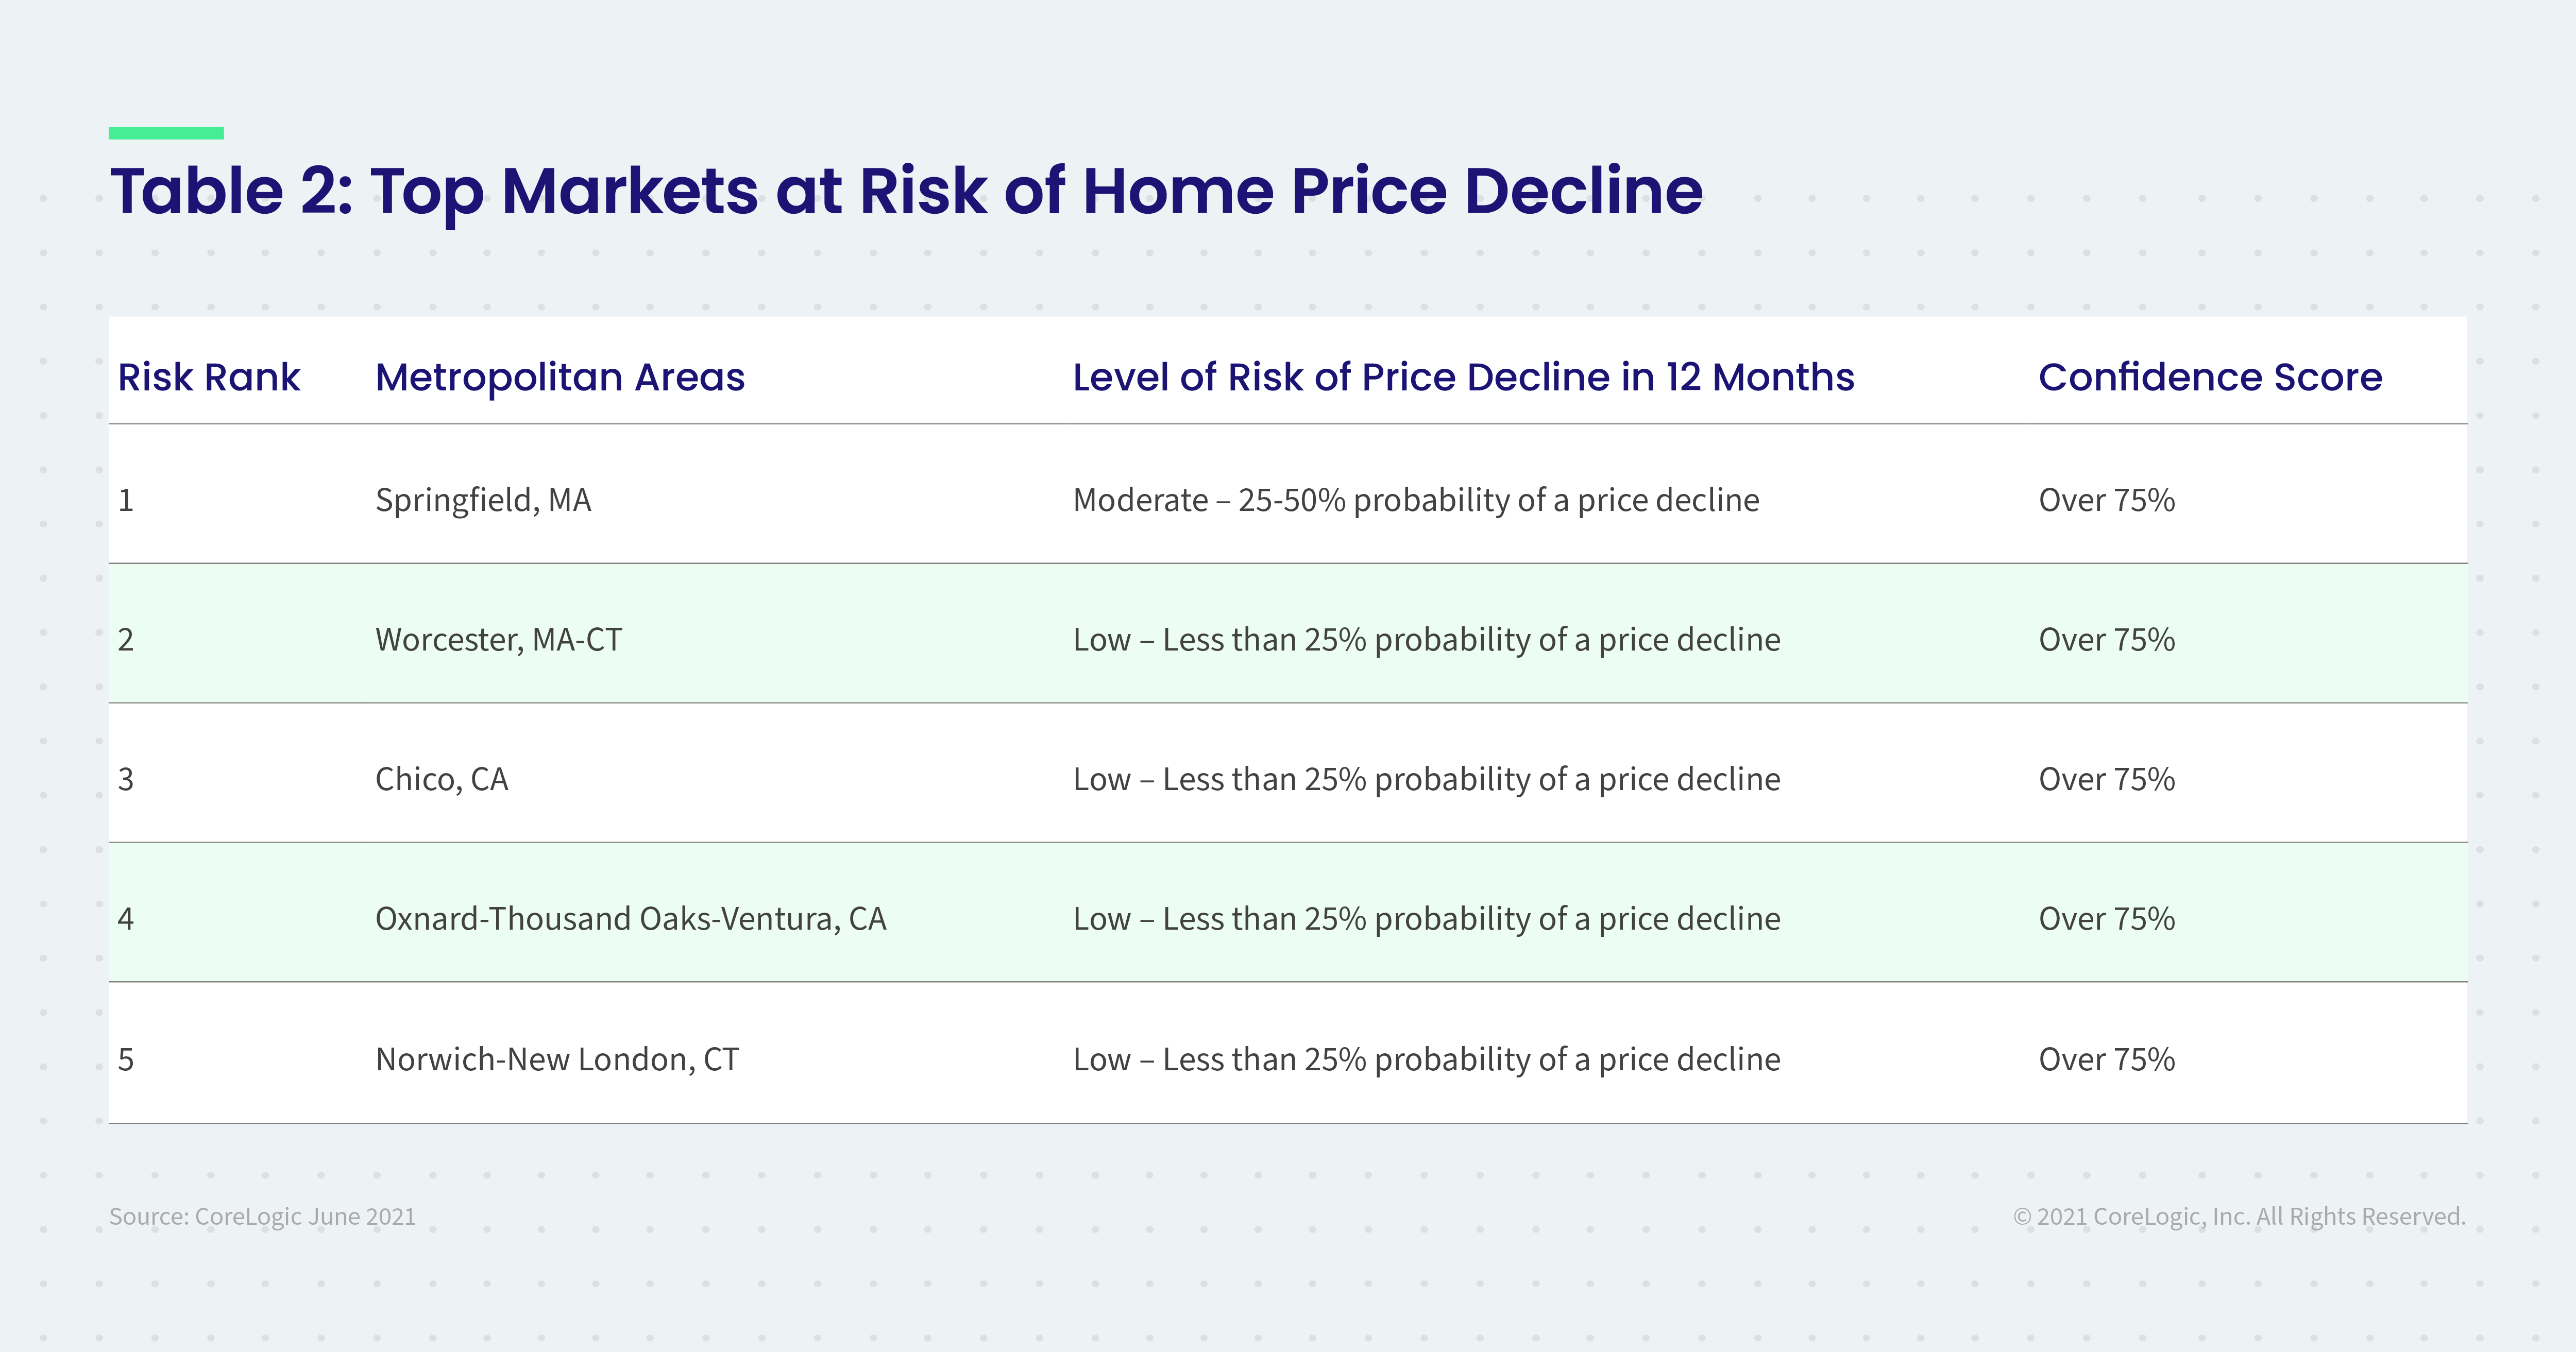 Table 2: Top Markets at Risk of Home Price Decline